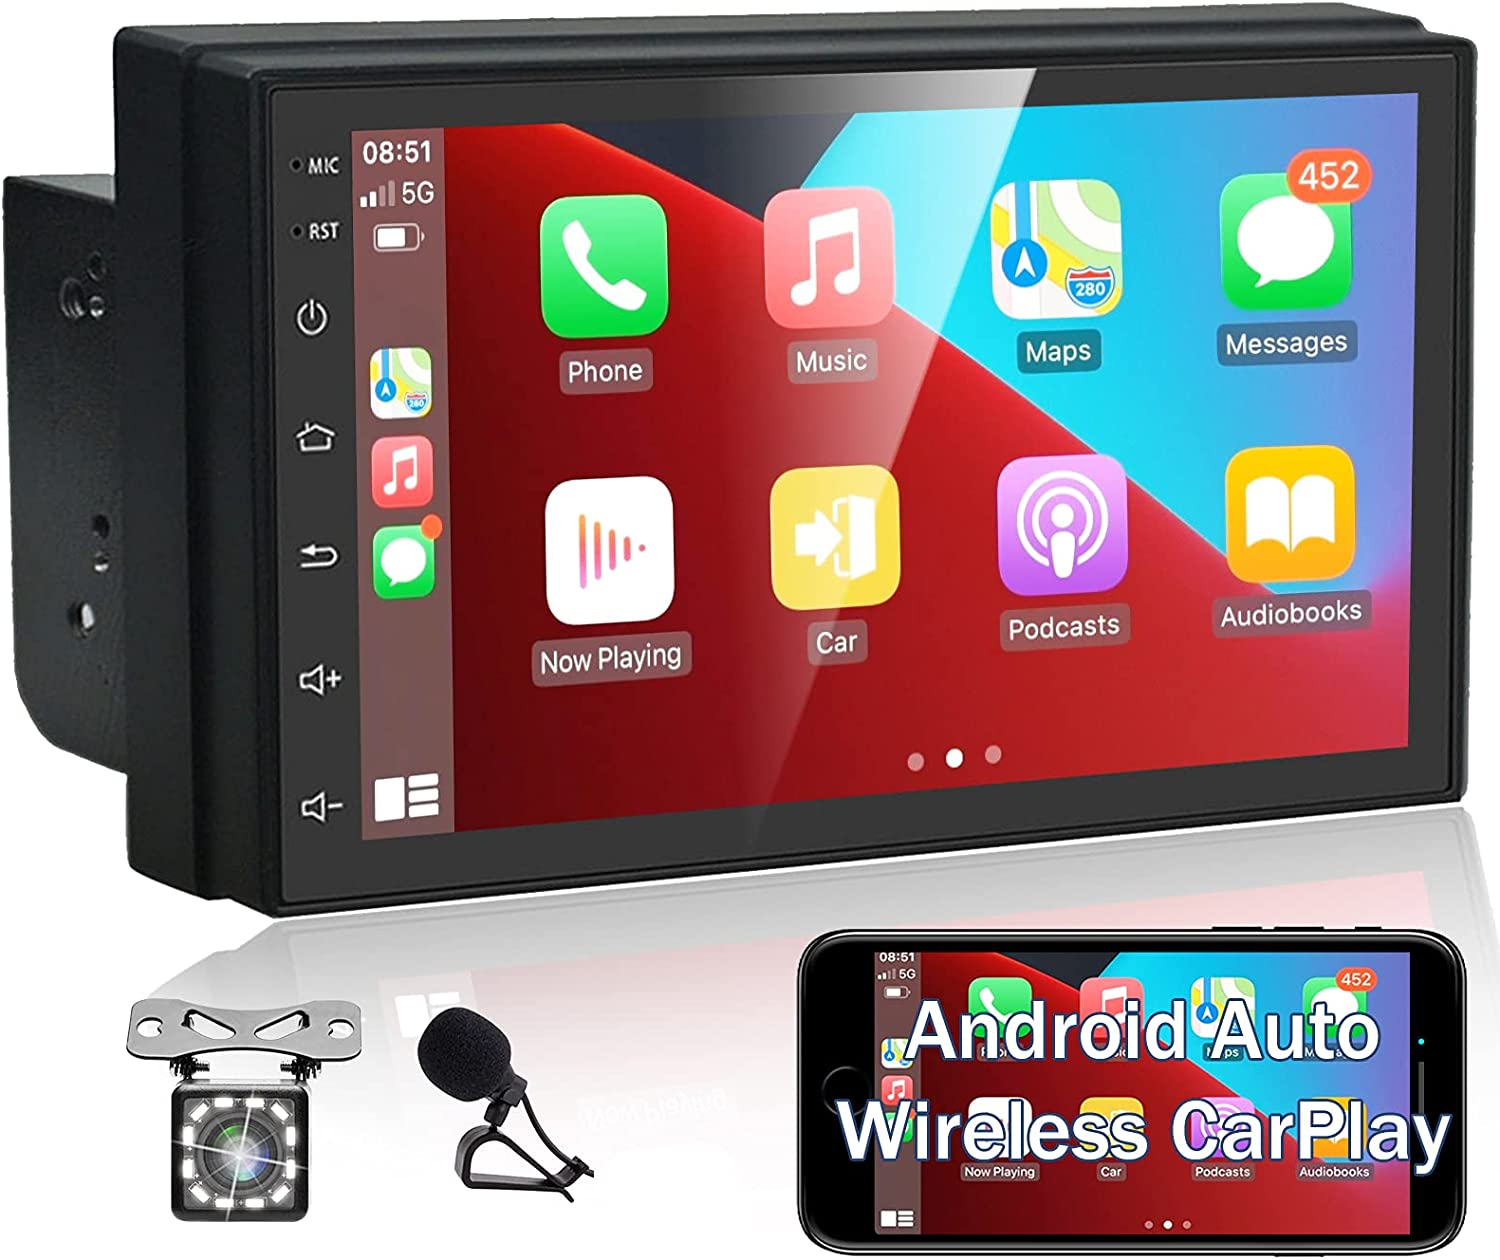 Android Double Din Car Stereo with Bluetooth- Wireless Apple Carplay & Android Auto, 7 Inch Touchscreen Car Radio Receiver with Backup Camera & Mic, Bluetooth, WiFi, FM, GPS Navigation